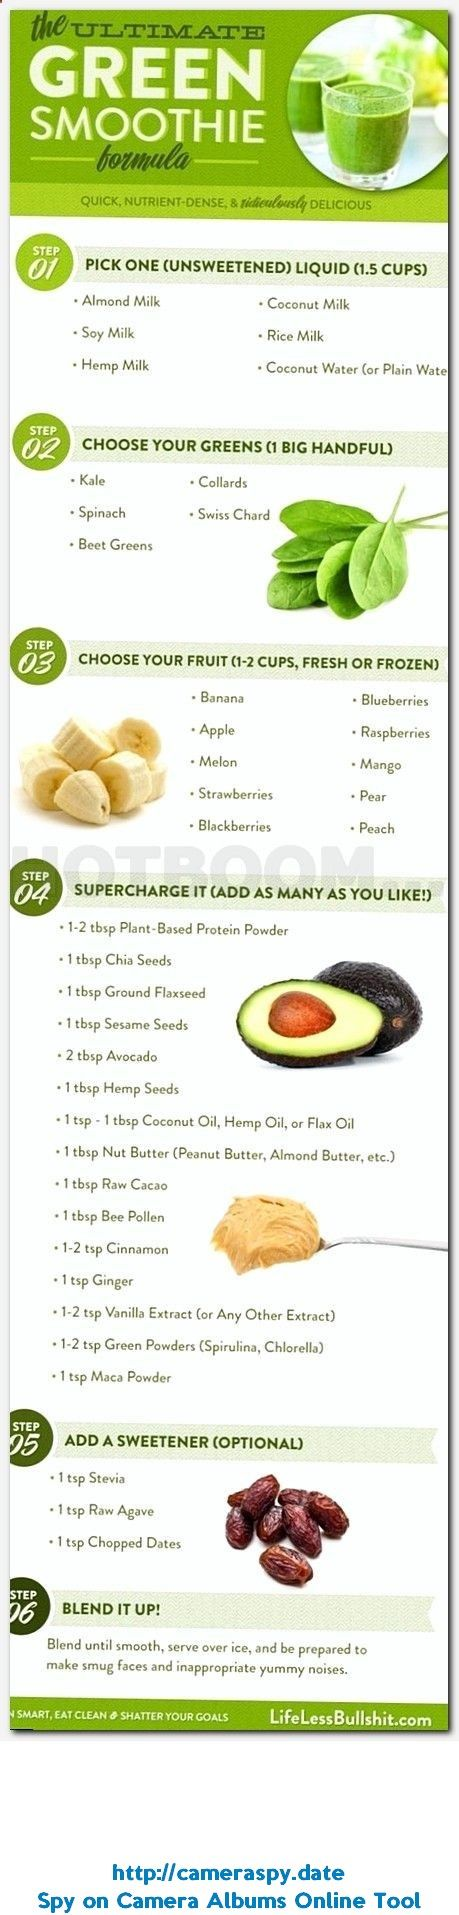 Fat Fast Shrinking Signal Diet-Recipes - foods rich in fiber, foods to avoid to lose weight, i m desperate to lose weight, the high fat diet, fast and easy vegetarian recipes, high glycemic foods list to avoid, how to lose belly fat fast in 1 week, the best foods to eat to lose weight, good keto foods, i need to lose 10 pounds in 2 weeks, proper diet to reduce weight, the food diet, coke, what to eat for a diet to lose weight, diet articles, brisk walking weight loss - Do This One Unu....